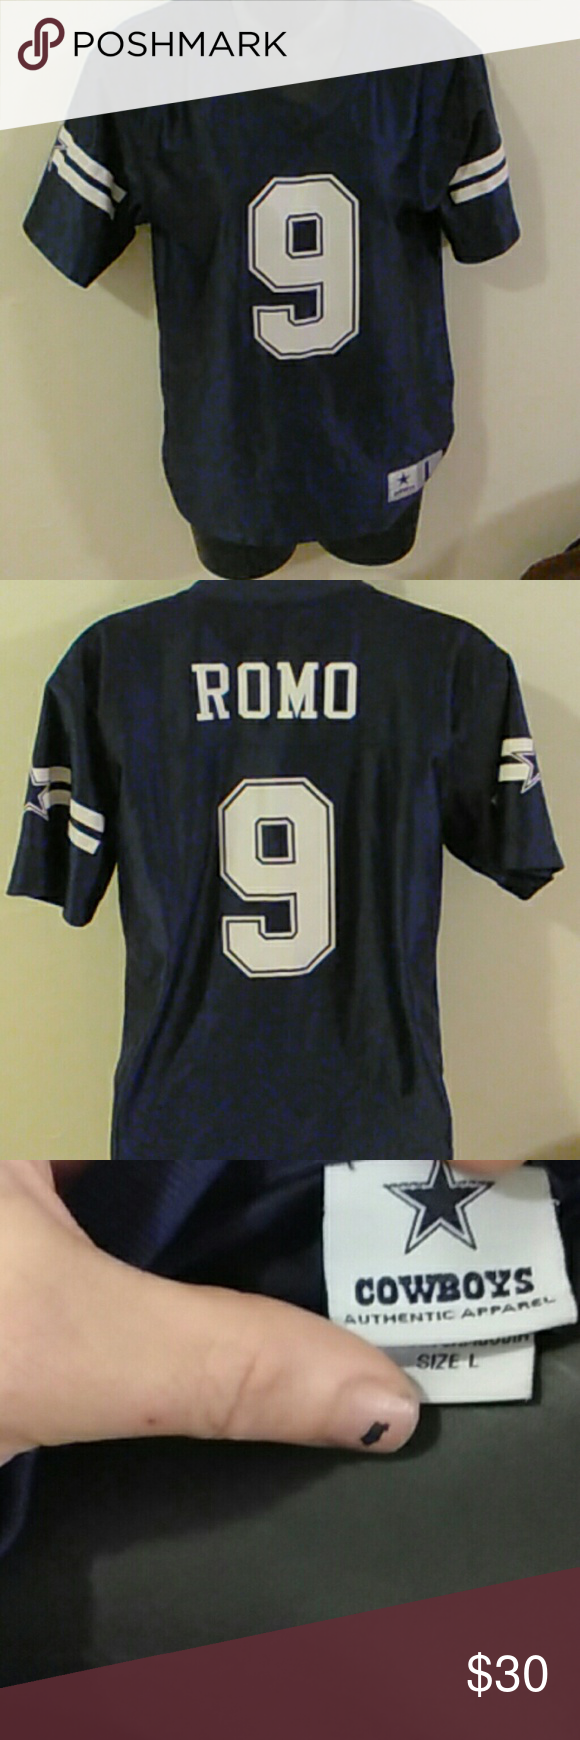 low priced 2ae69 e0af2 Tony Roma Jersey. Cowboys never worn New. No tags. It's a ...